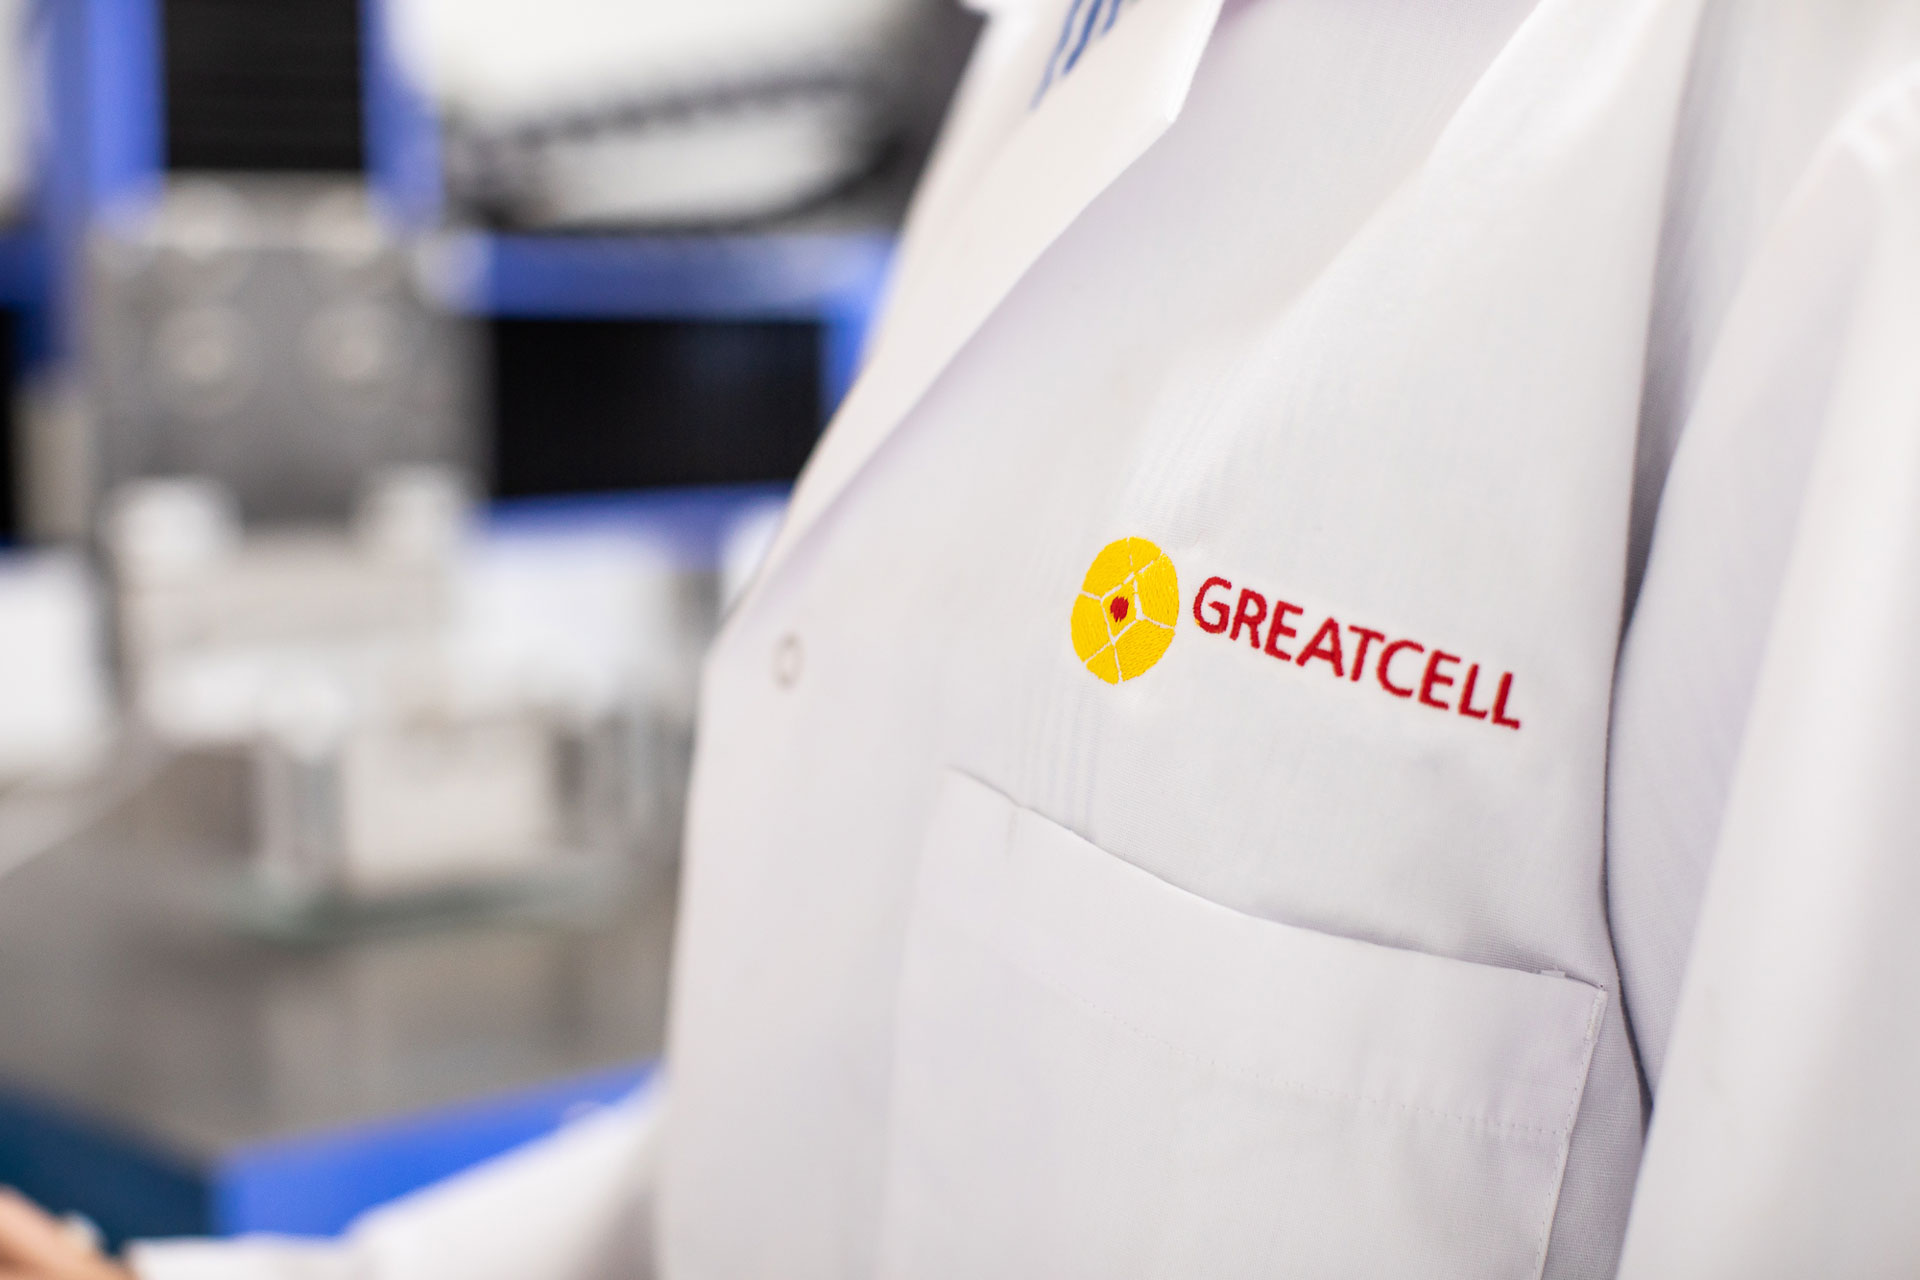 Greatcell Logo on Lab Jacket